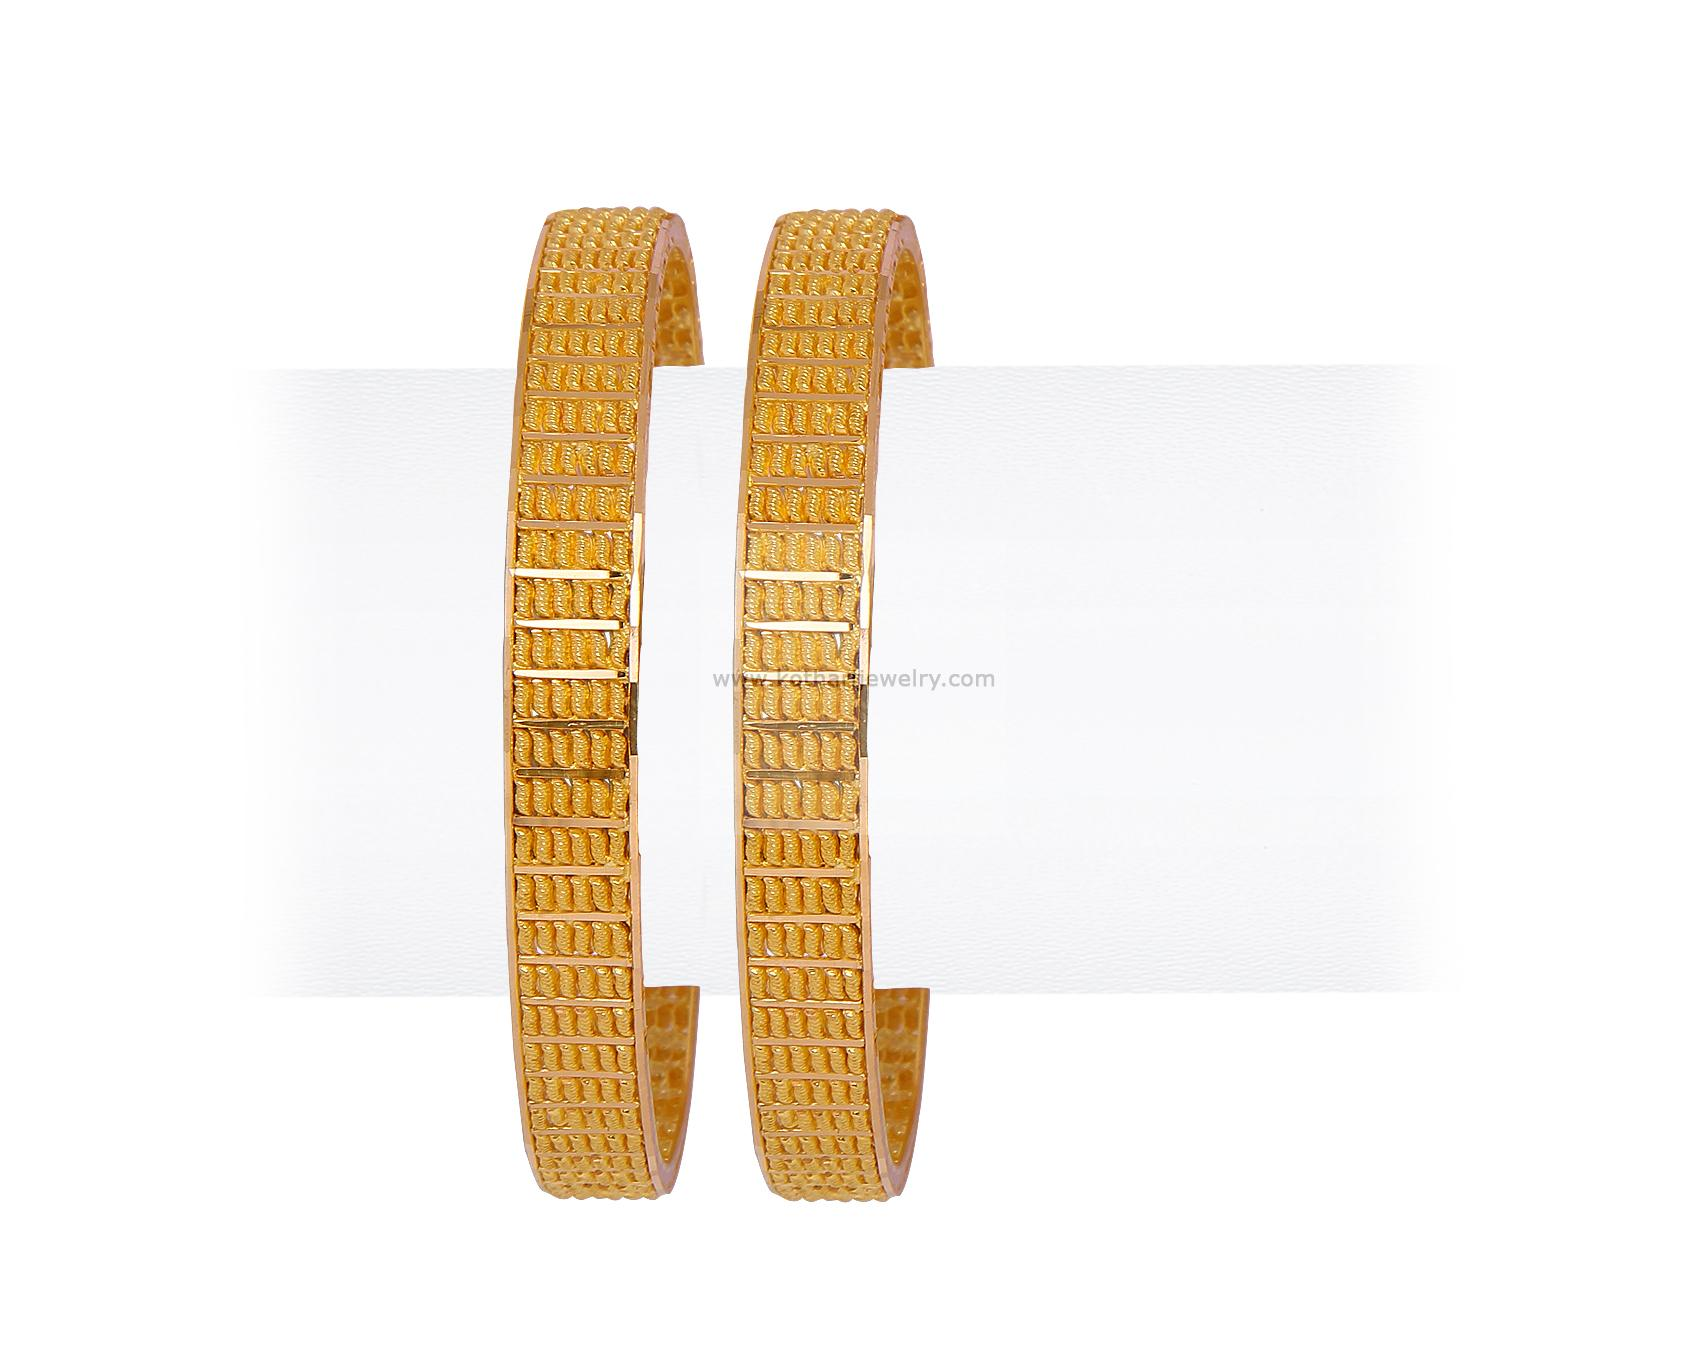 kundan bangles karat water antique gold bracelets bangle product